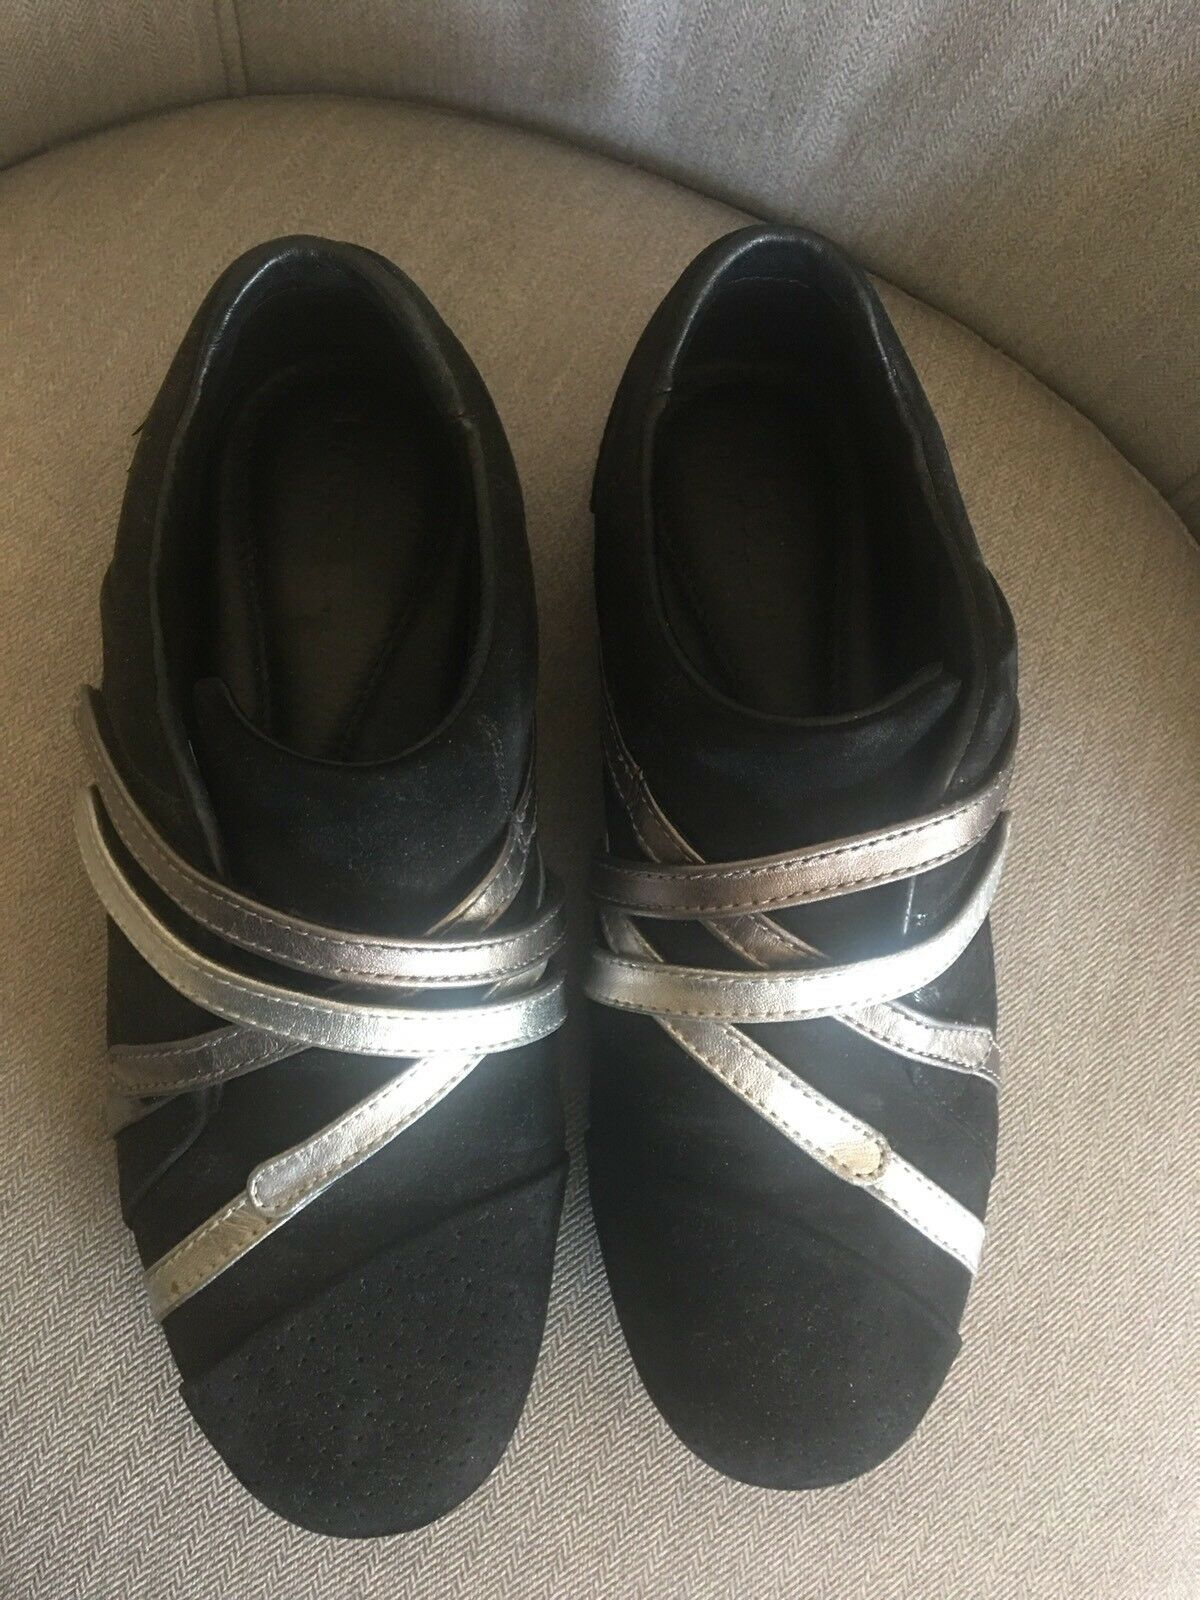 Lacoste Black Suede With Silver Strip Sneaker shoes US US US 6 M 0ee5d1